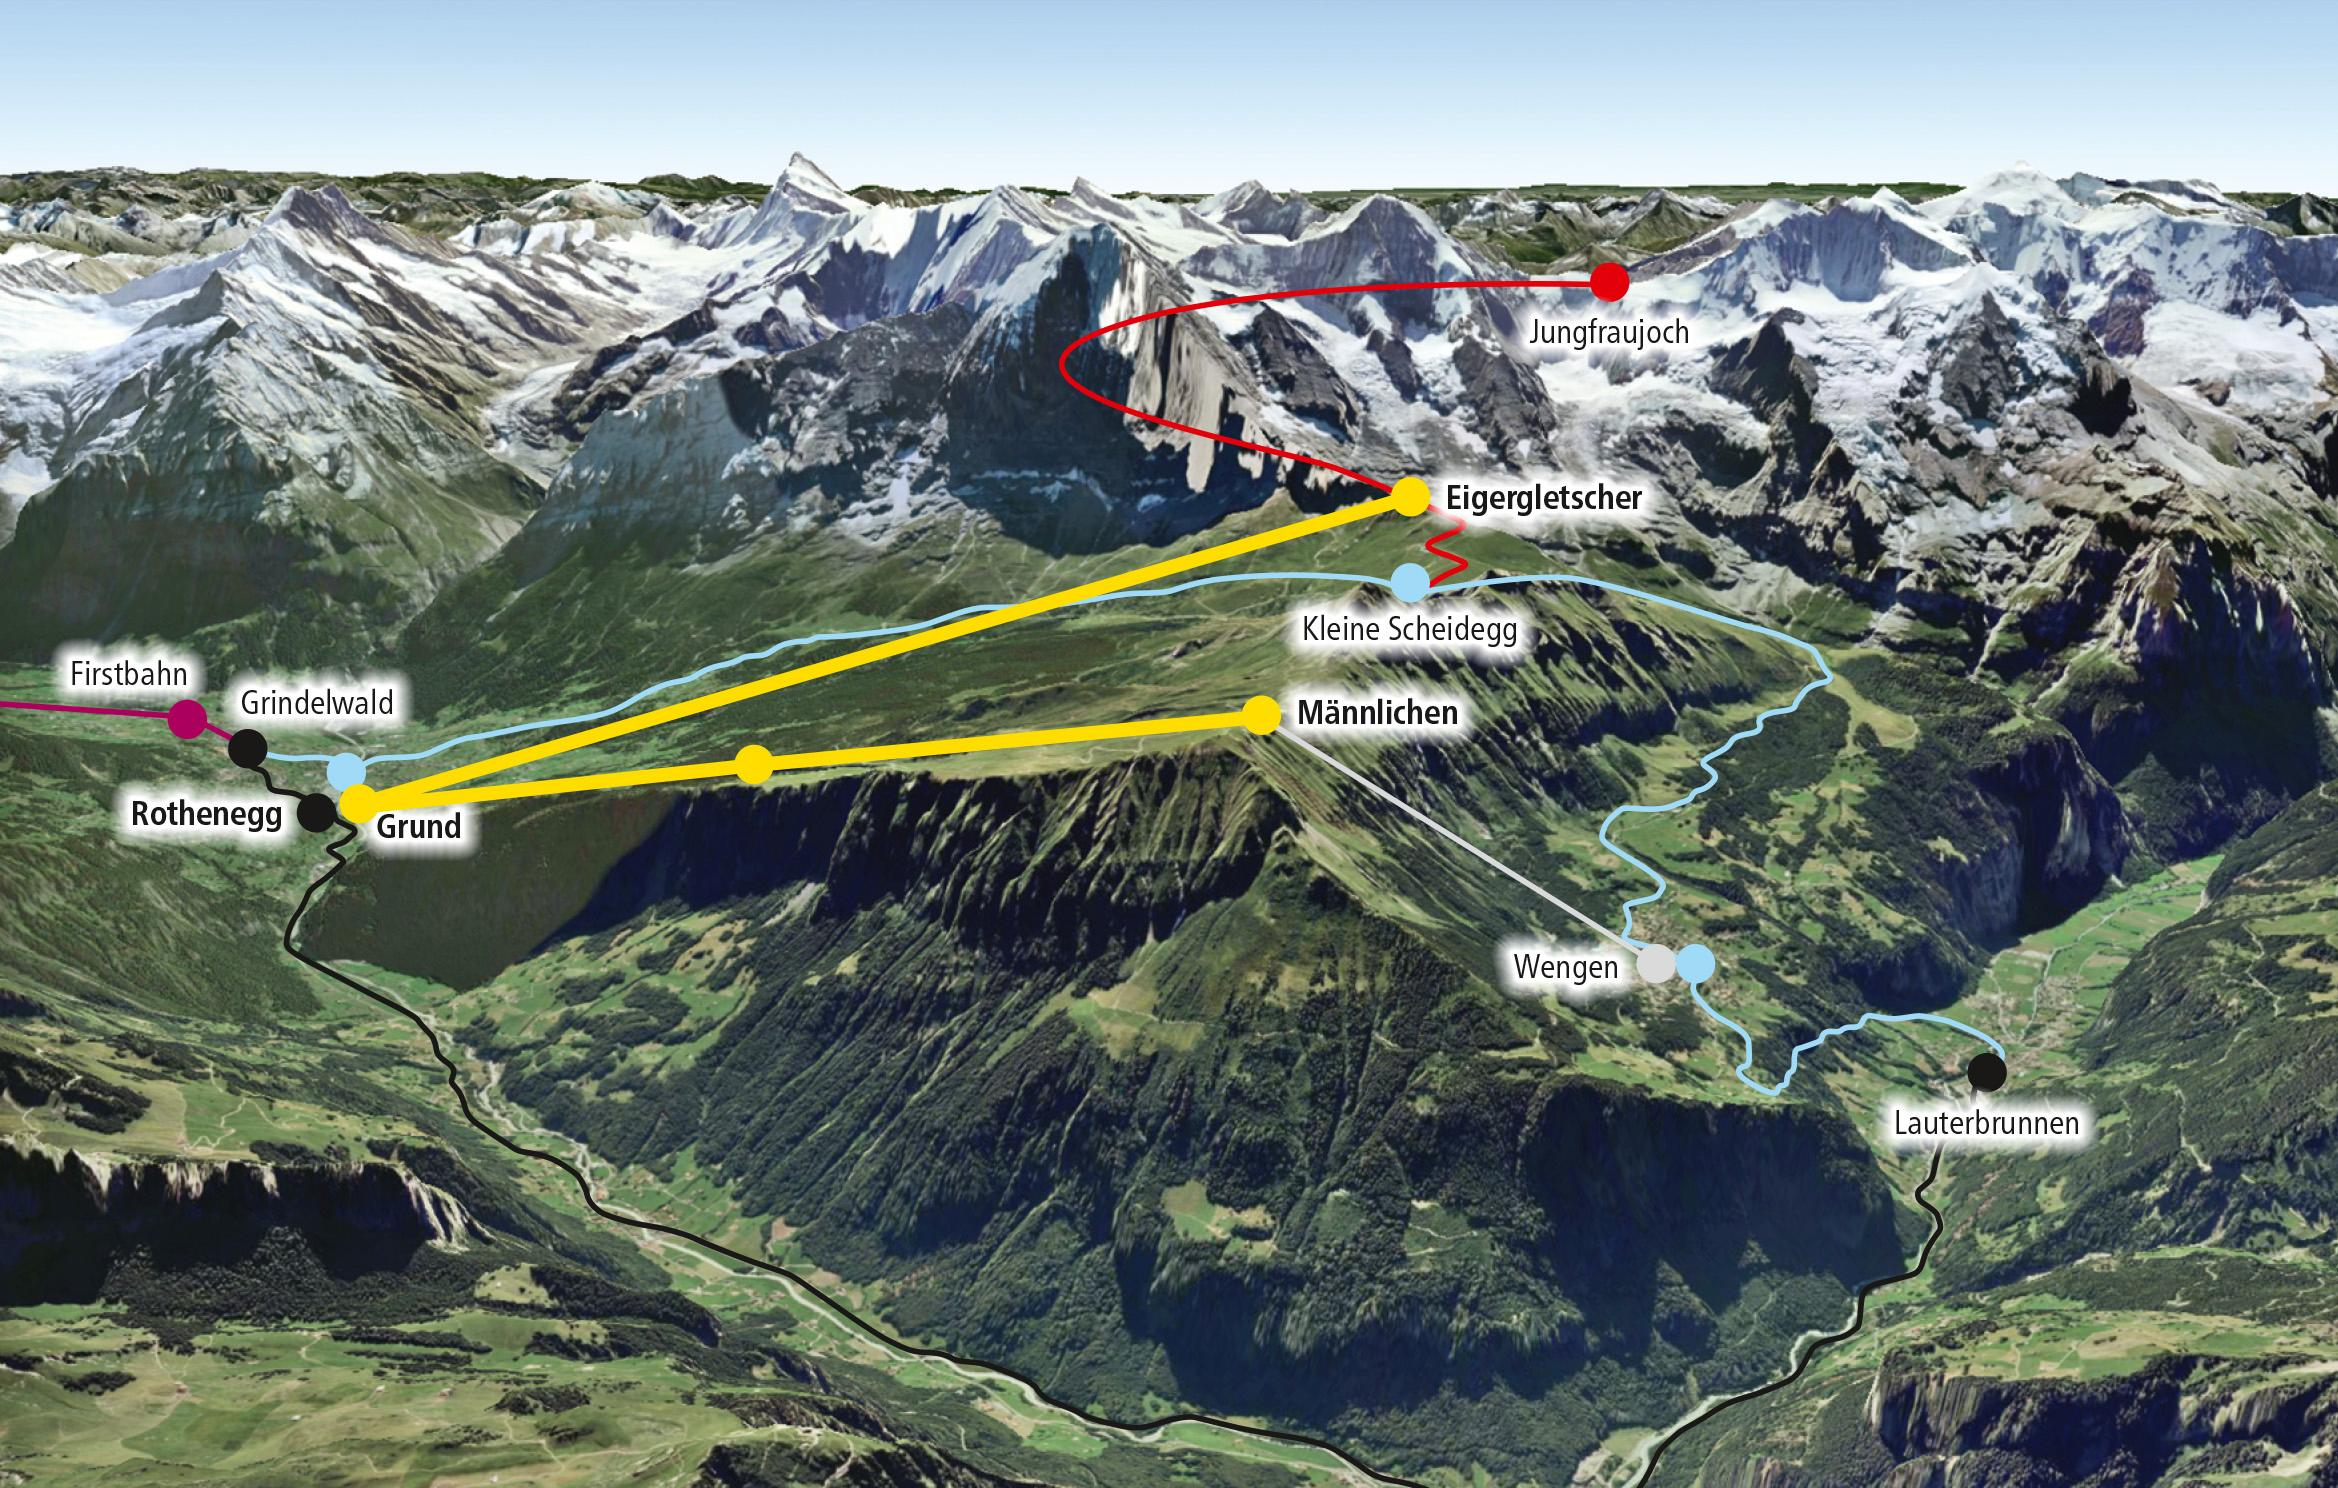 The yellow lines show the proposed new cable car route to Eigergletscher and the improved route to Männlichen, the blue lines are existing railway routes and the red line is the railway to the Jungfraujoch